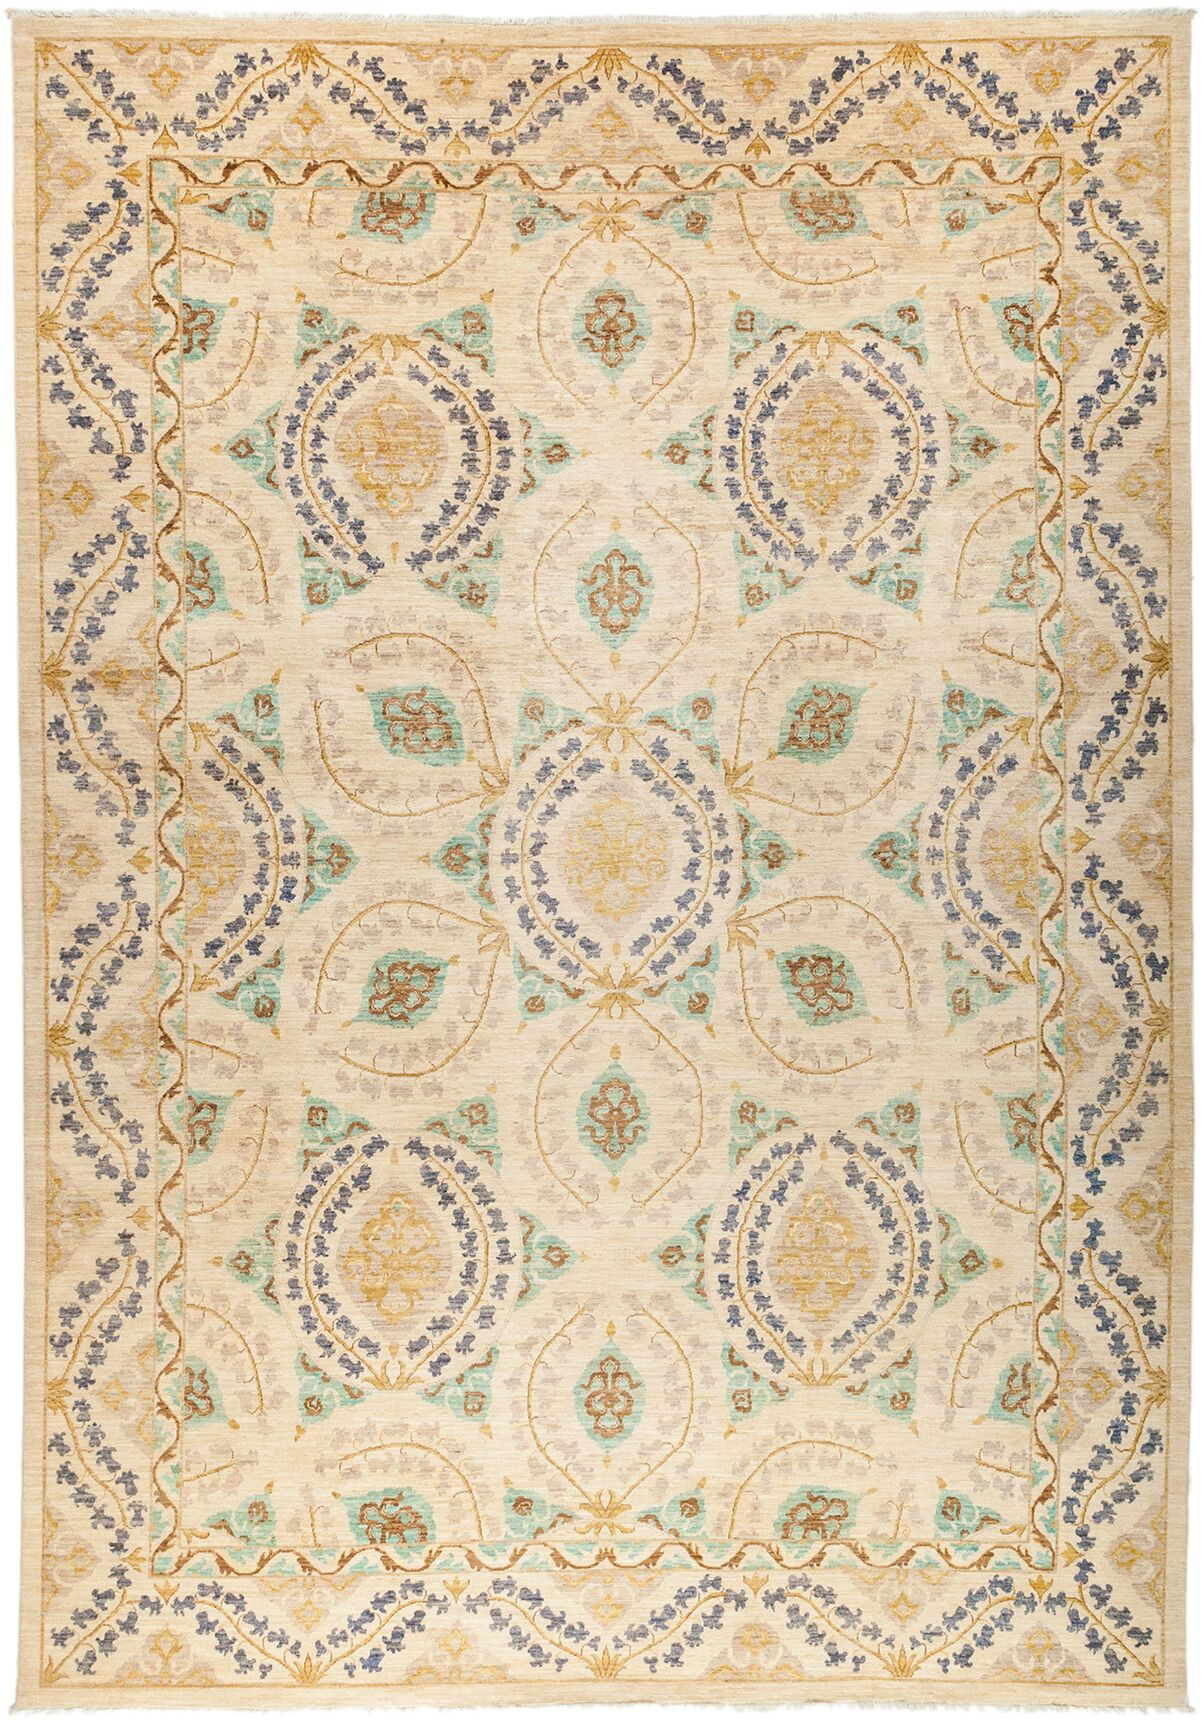 One-of-a-Kind Suzani Hand-Knotted Beige Area Rug Rug Size: 10'3